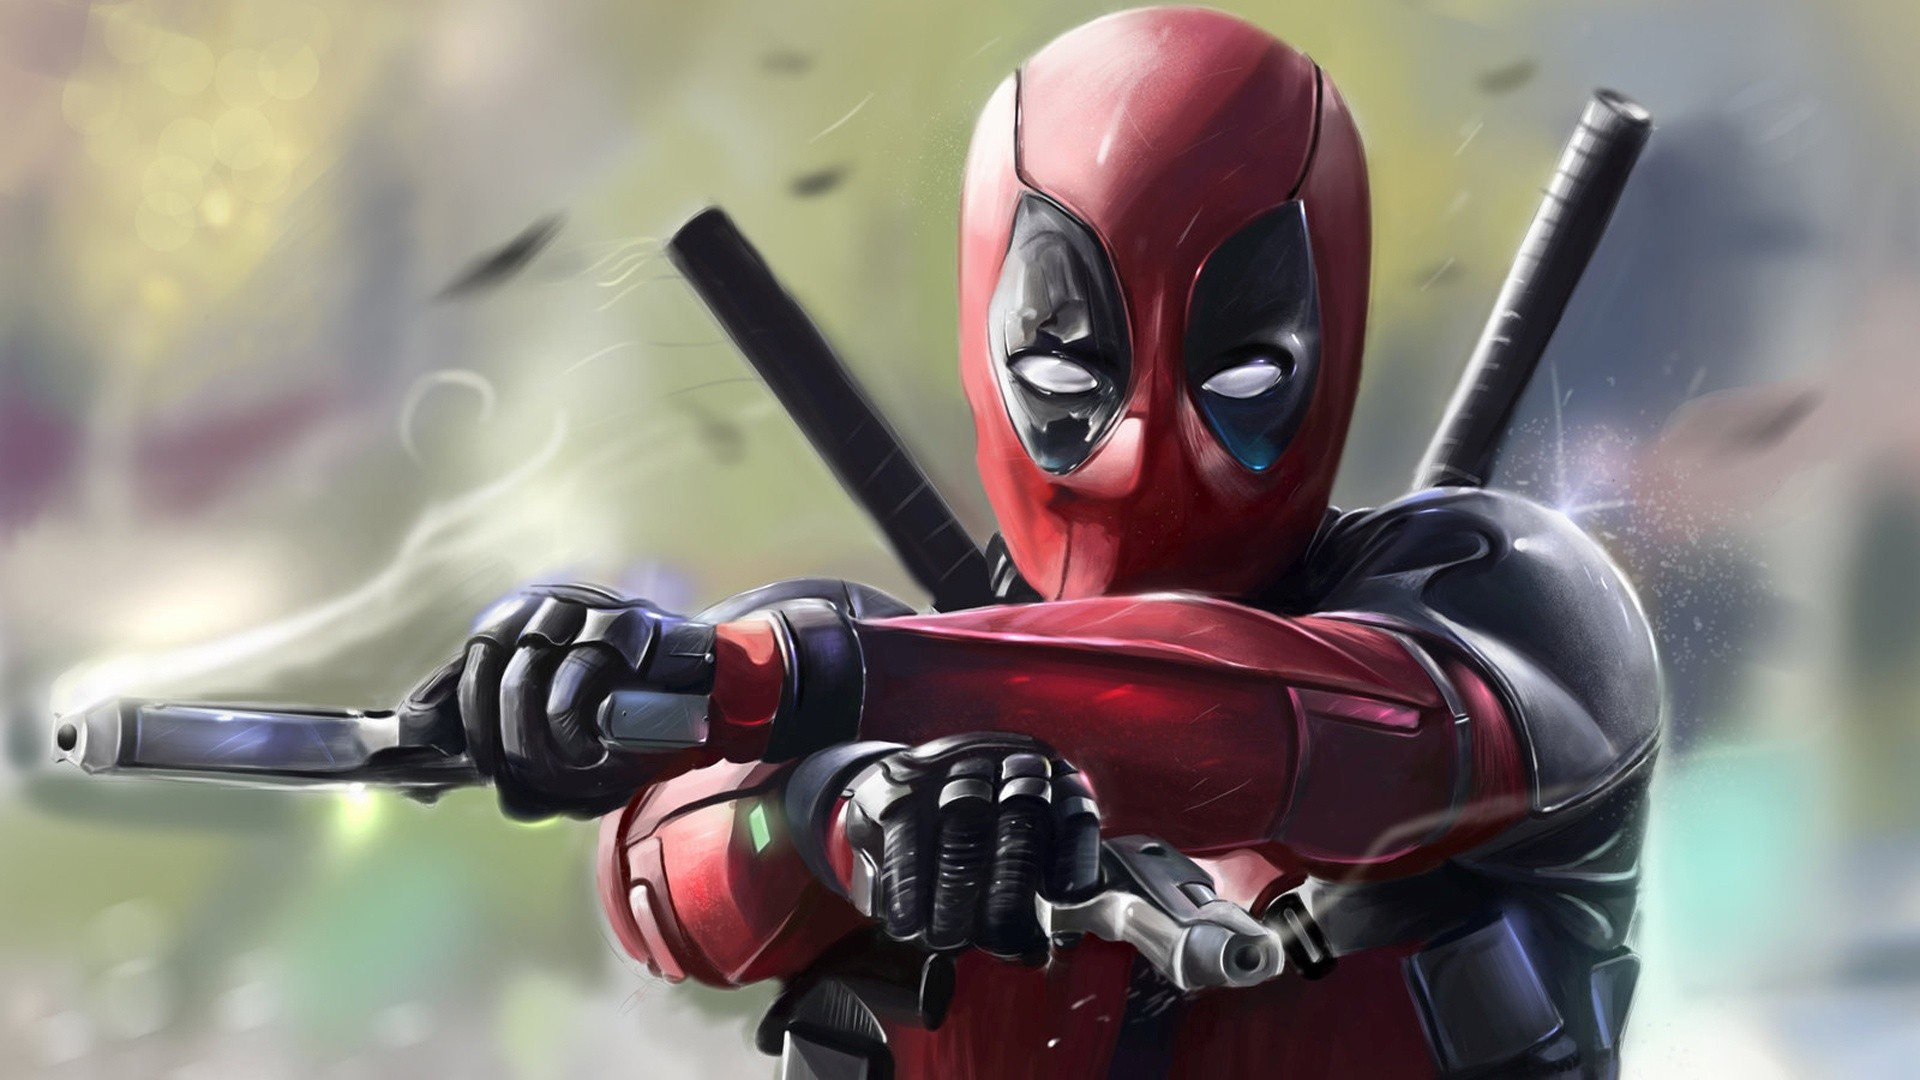 Movie Hd Wallpapers: Deadpool Wallpaper HD ·① Download Free Wallpapers For